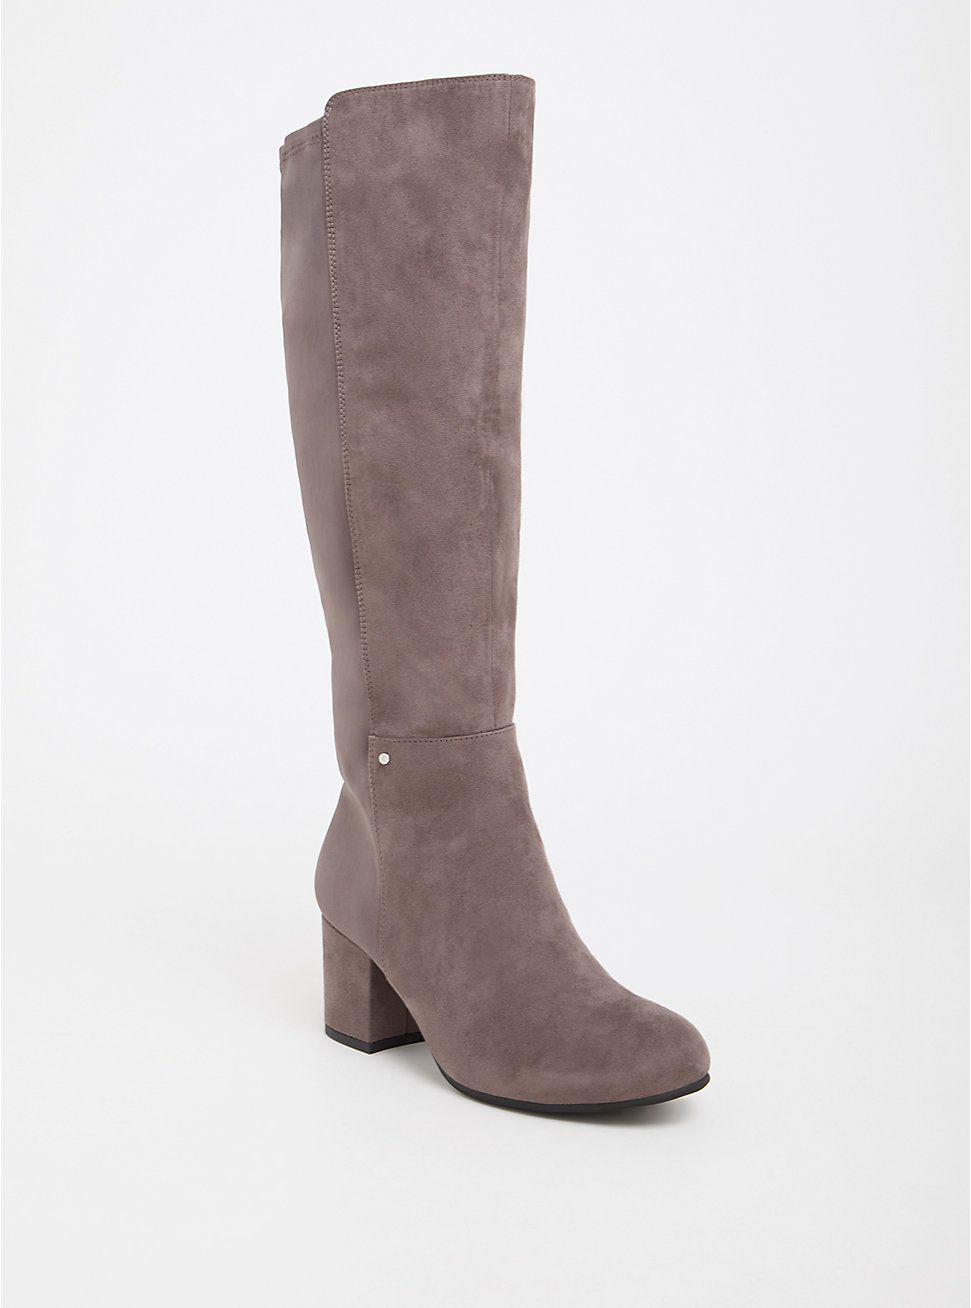 489a741ad4e Plus Size Circus by Sam Edelman Grey Faux Suede   Neoprene Boot (Wide Width    Wide Calf)